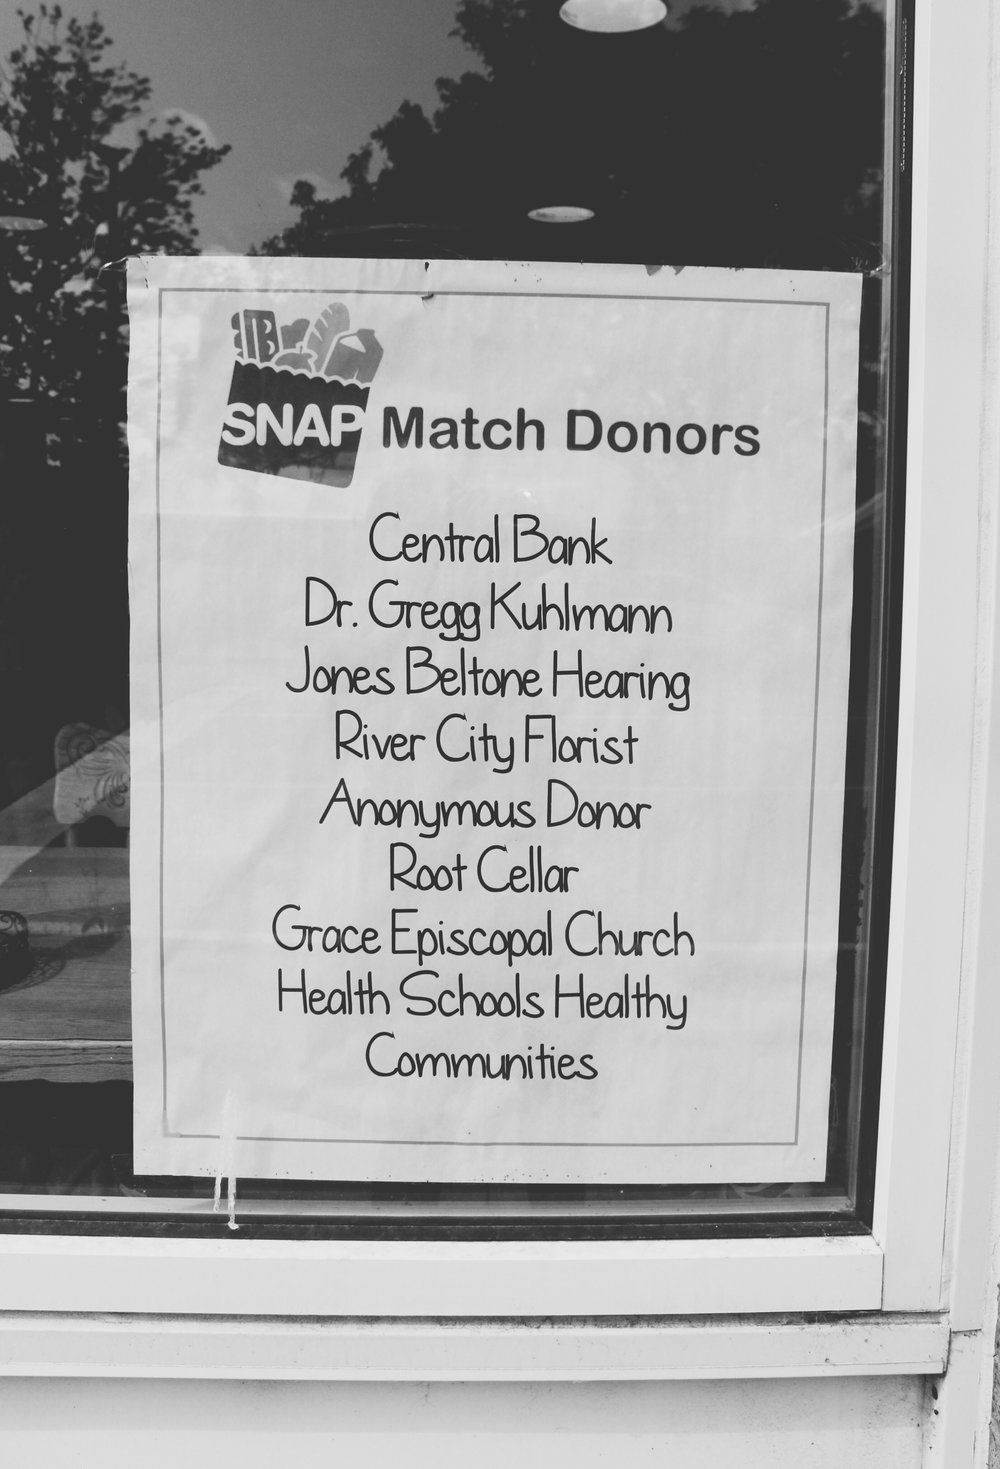 snap-match-donors-capital-city-farmers-market-jefferson-city-mo-jeff-city-blog-year-round-market-lunch-spot-fresh-local-food-artisans-indoor-market-